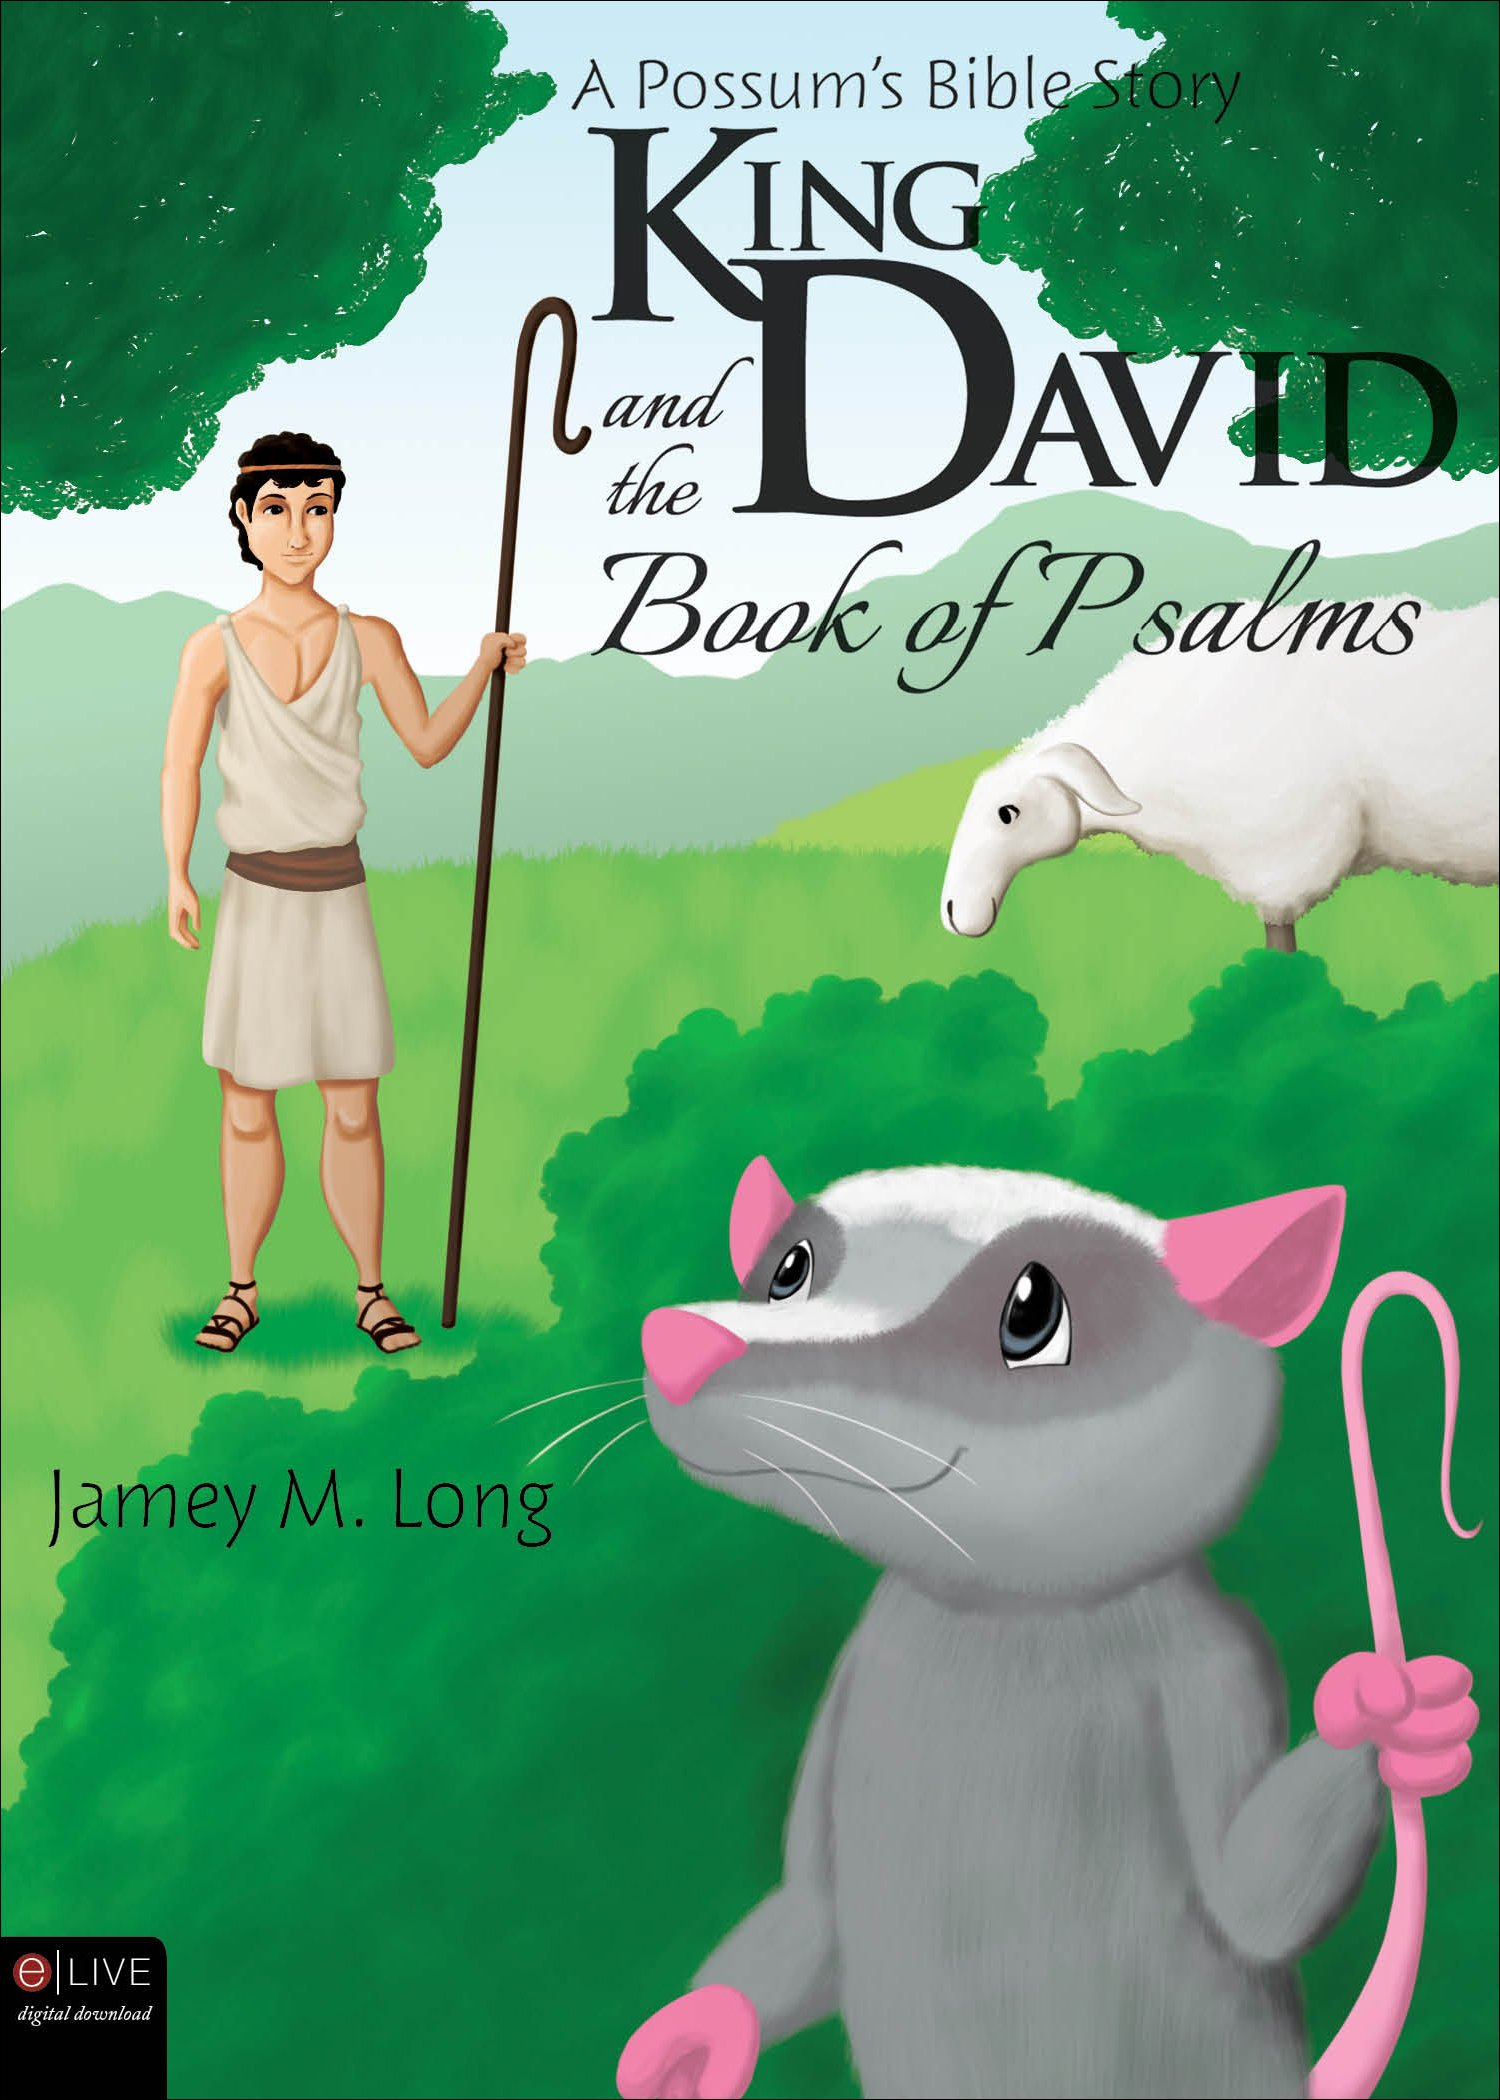 Read Online A Possum's Bible Story: King David and the Book of Psalms pdf epub